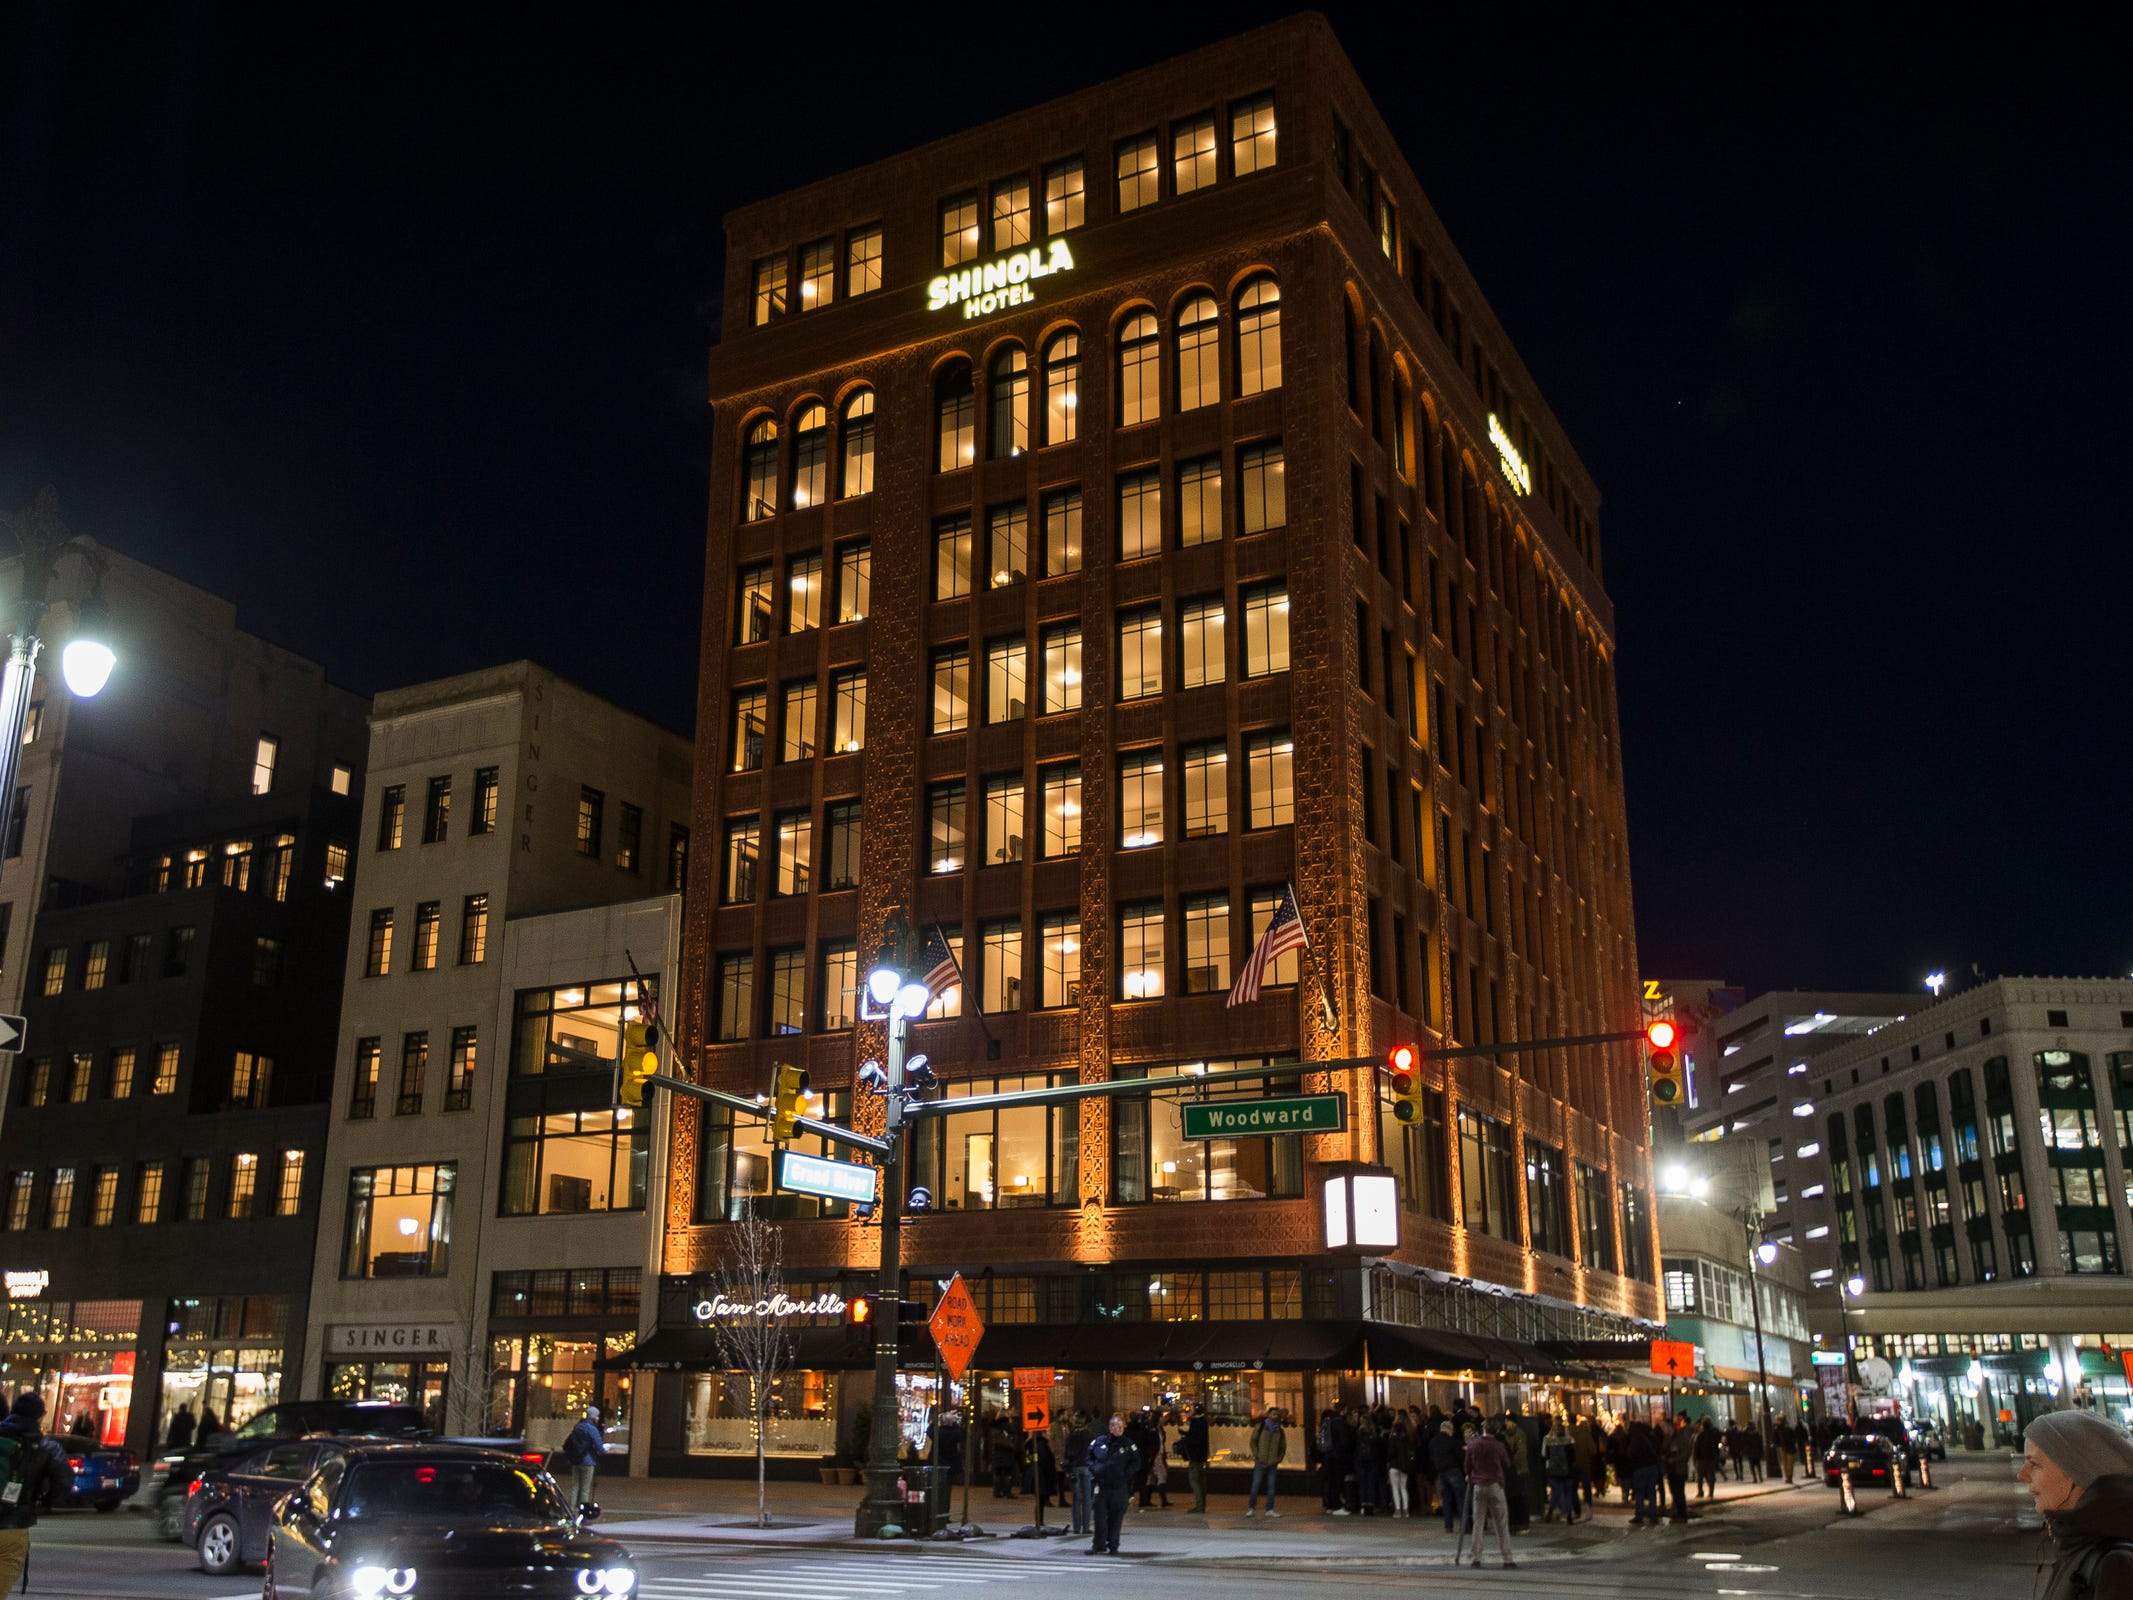 Shinola Hotel in downtown Detroit, Tuesday, Dec. 18, 2018.